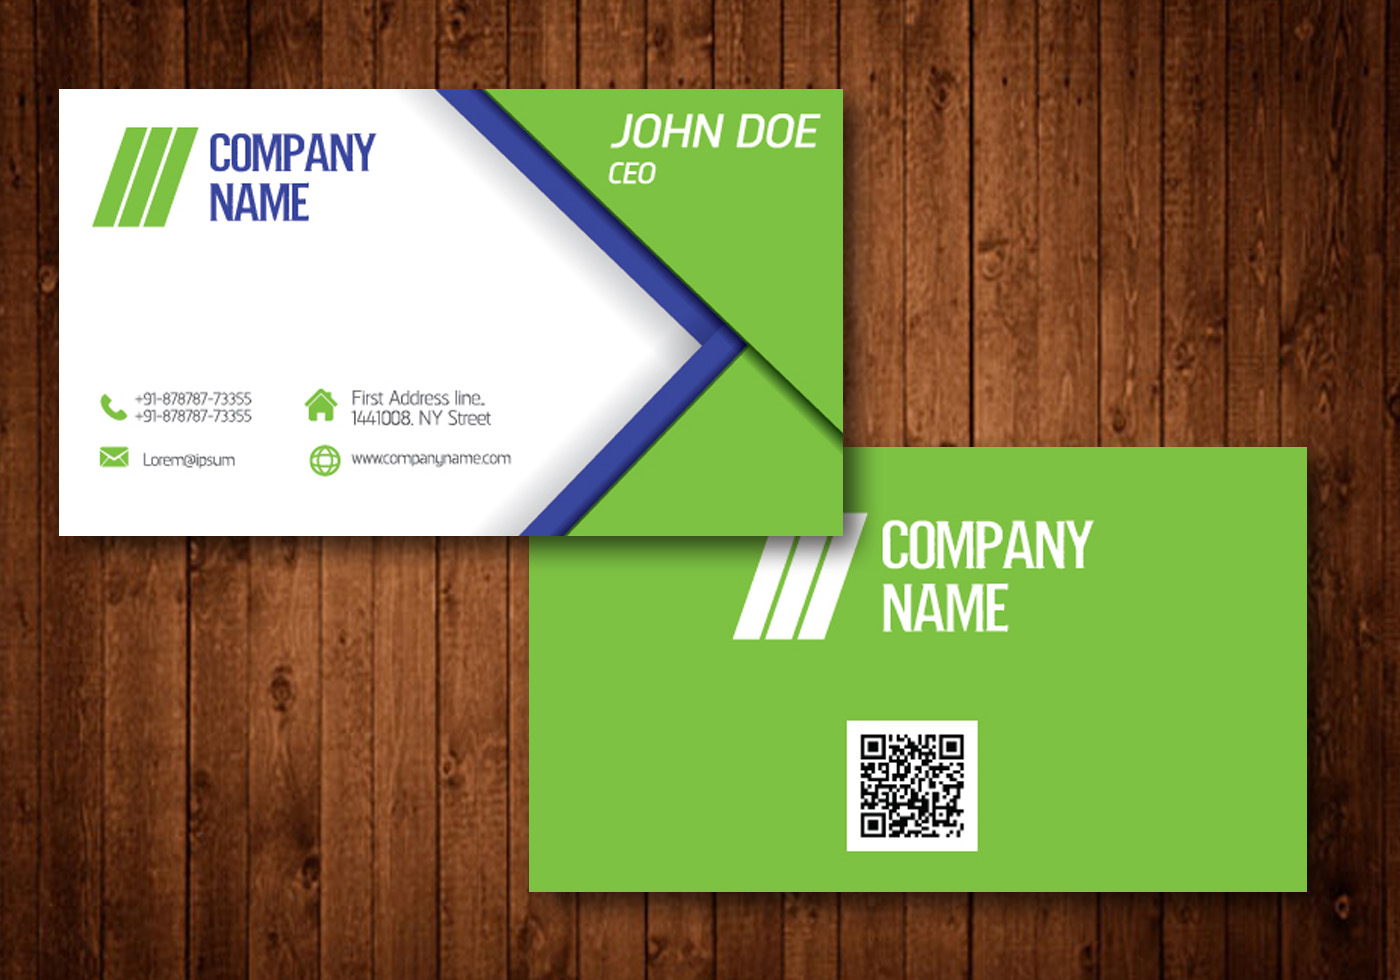 Business Card Free Vector Art 45804 Free Downloads